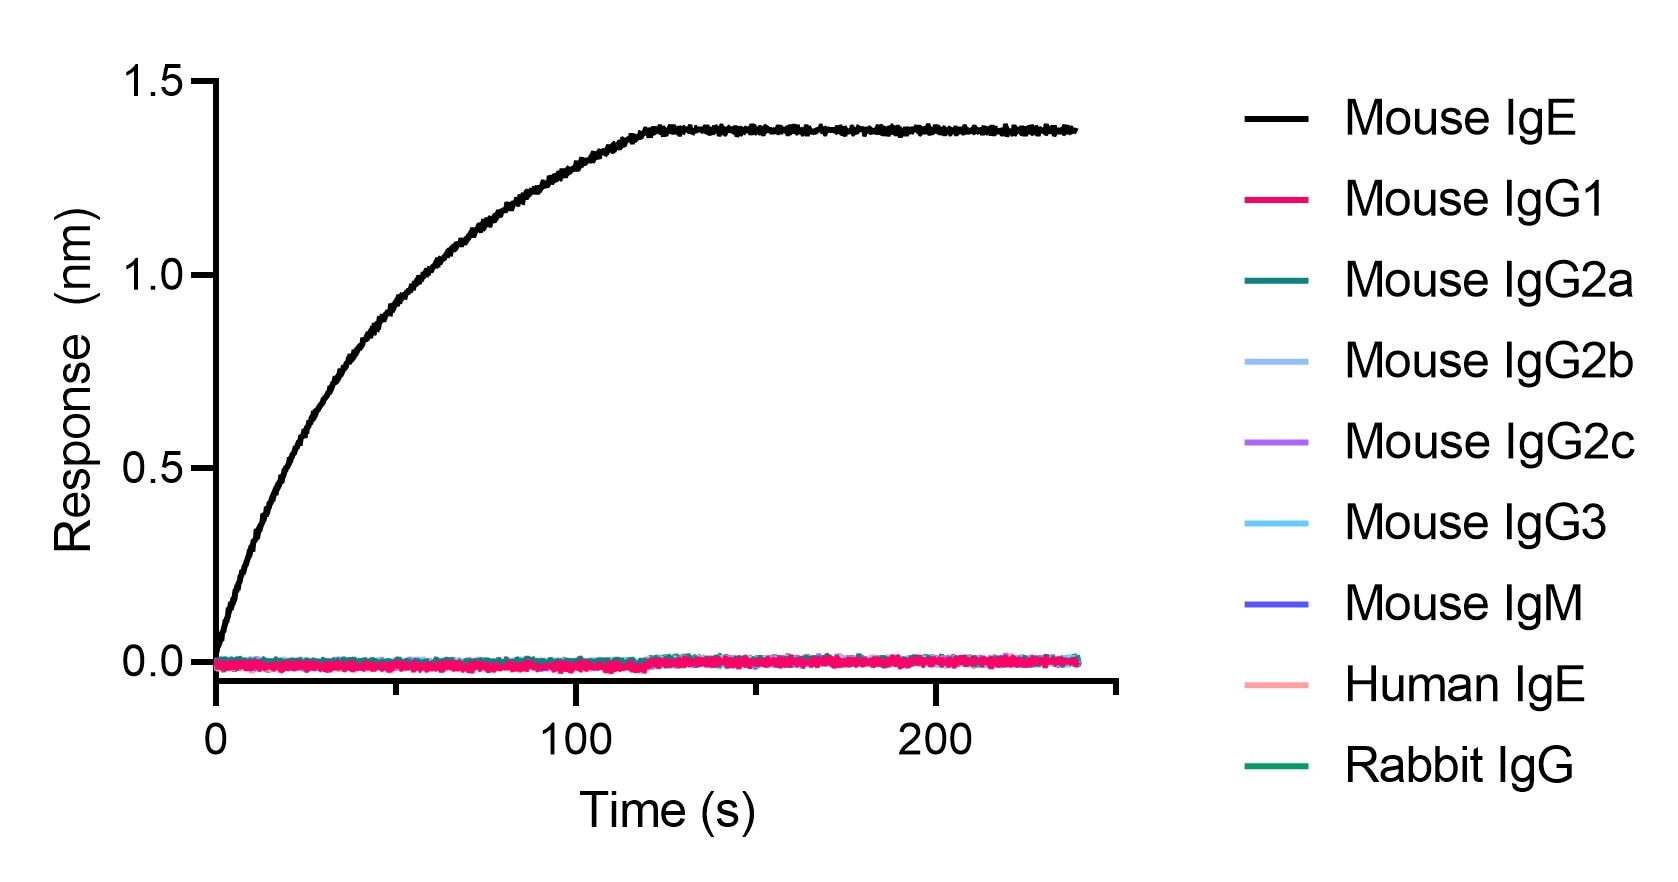 BLI binding kinetics of mouse, human and rabbit antibodies. 20 nM of mouse, human and rabbit antibodies were immobilized using Nano-CaptureLigand mouse IgE, VHH, biotinylated on FortéBio Streptavidin (SA) Biosensors. Only mouse IgE antibody is captured by the Nano-CaptureLigand with negligible dissociation.